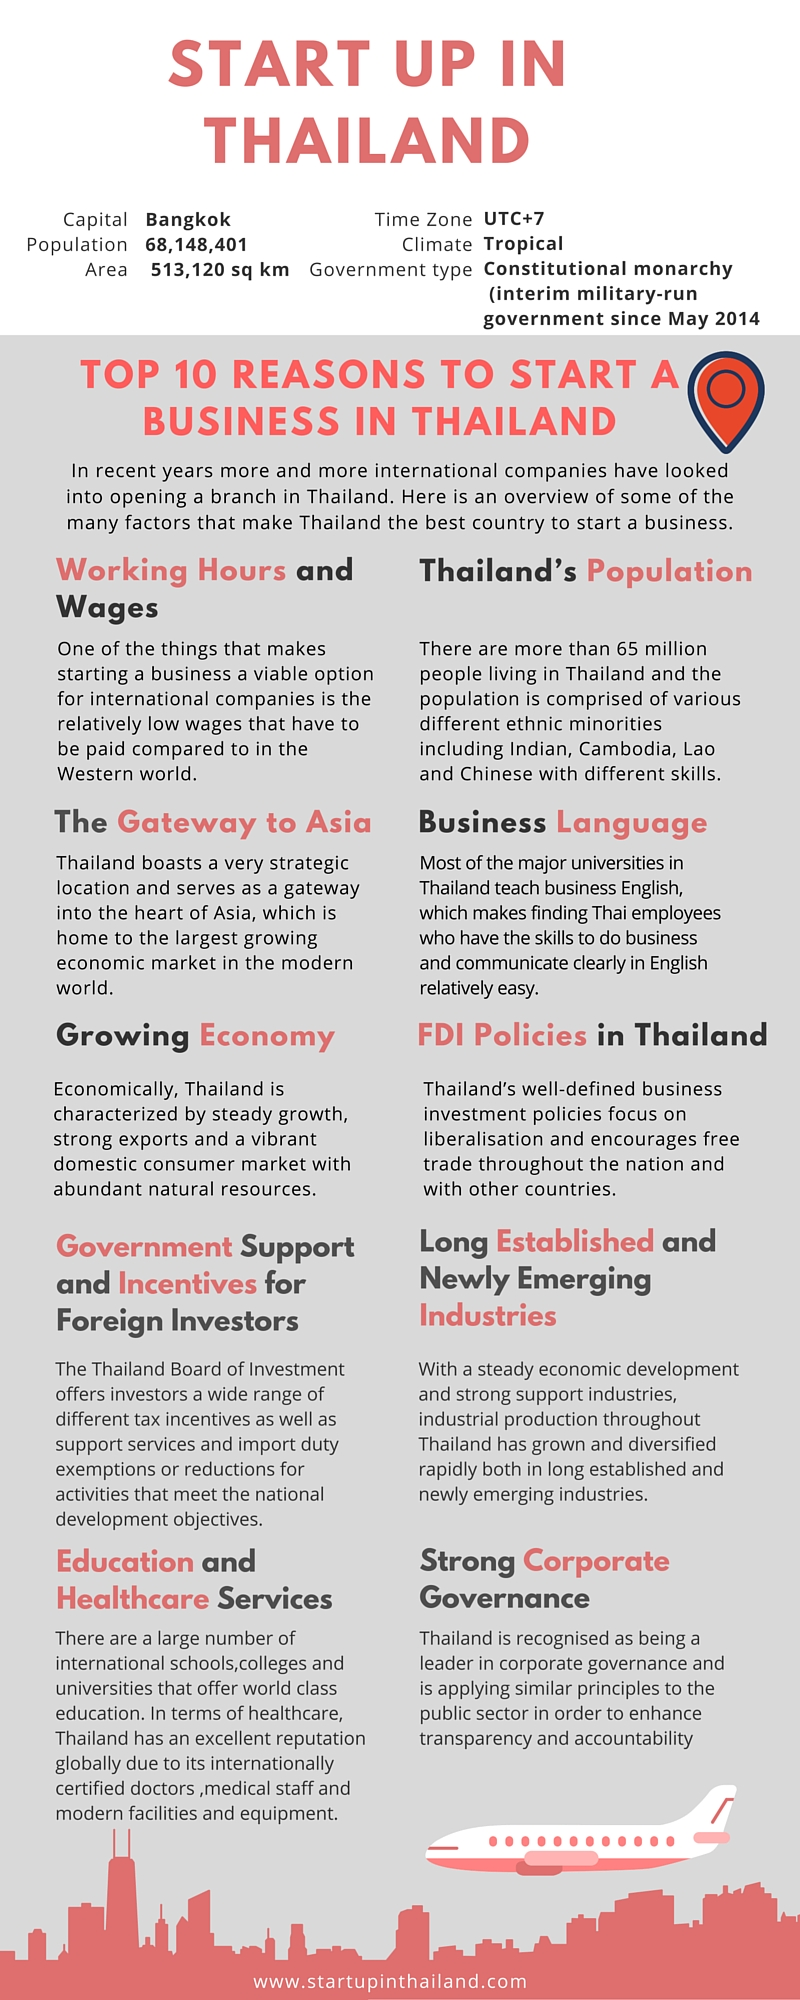 An infographic flow of top 10 reasons to start a business in Thailand